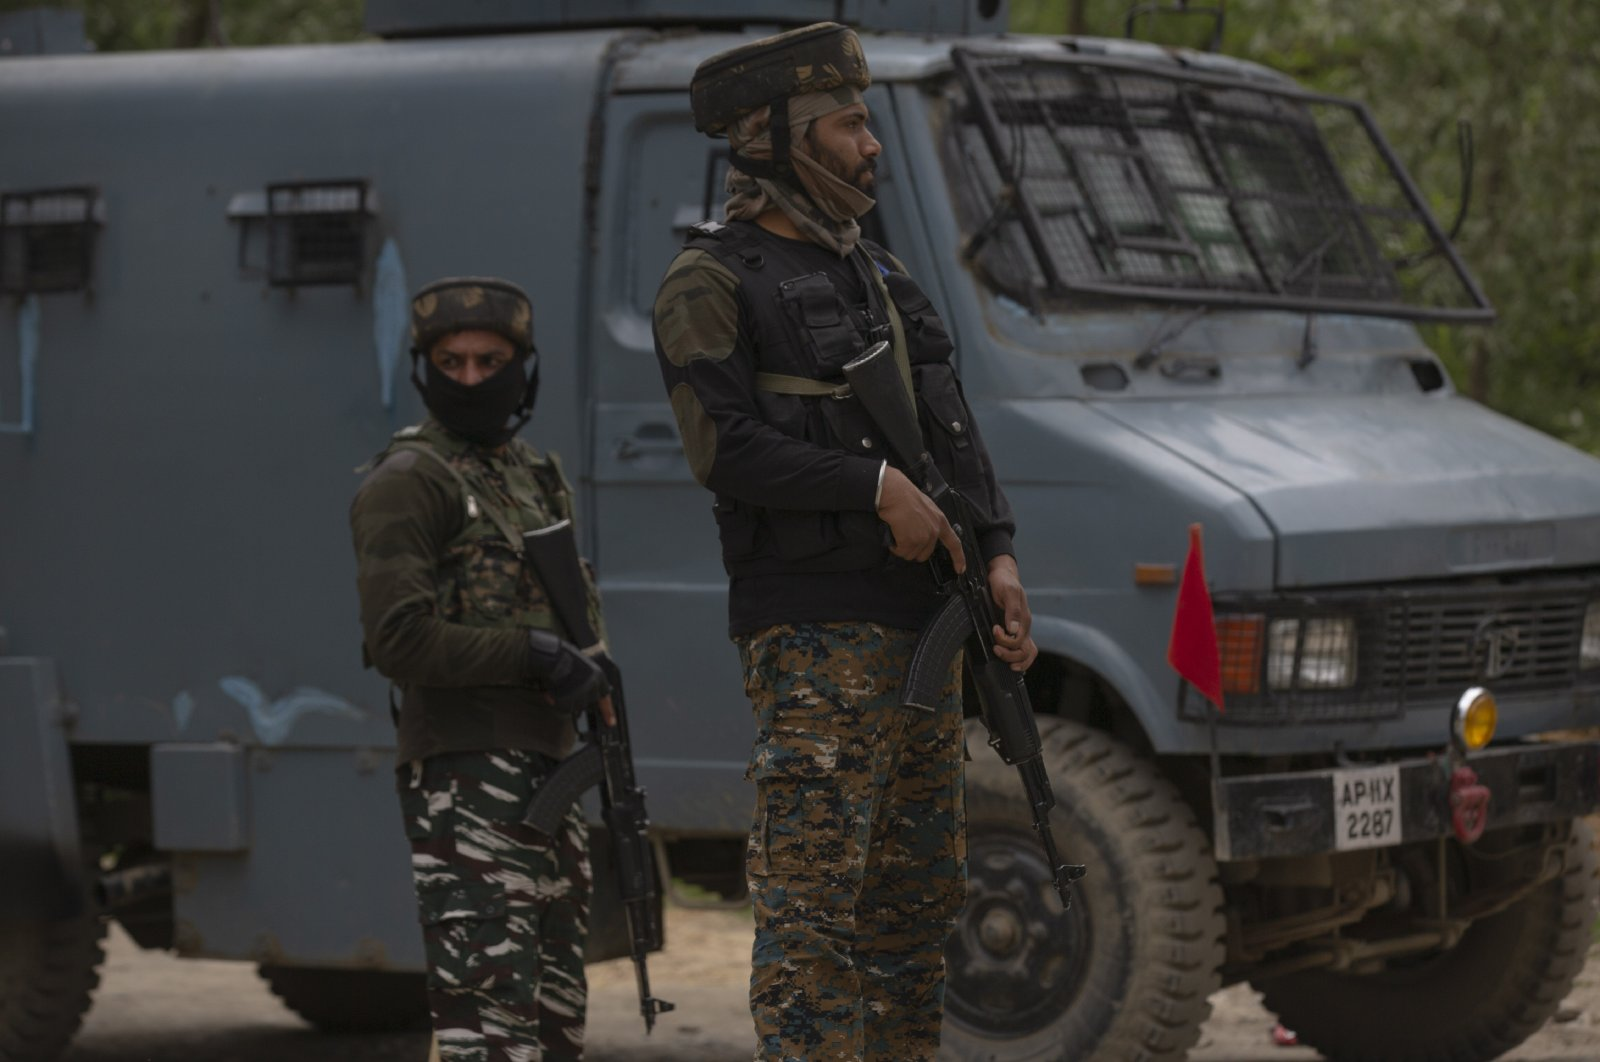 Indian paramilitary soldiers stand guard as police and army soldiers launch an operation in Awantipora area, south of Srinagar, Indian controlled Kashmir, Wednesday, May 6, 2020. (AP Photo)